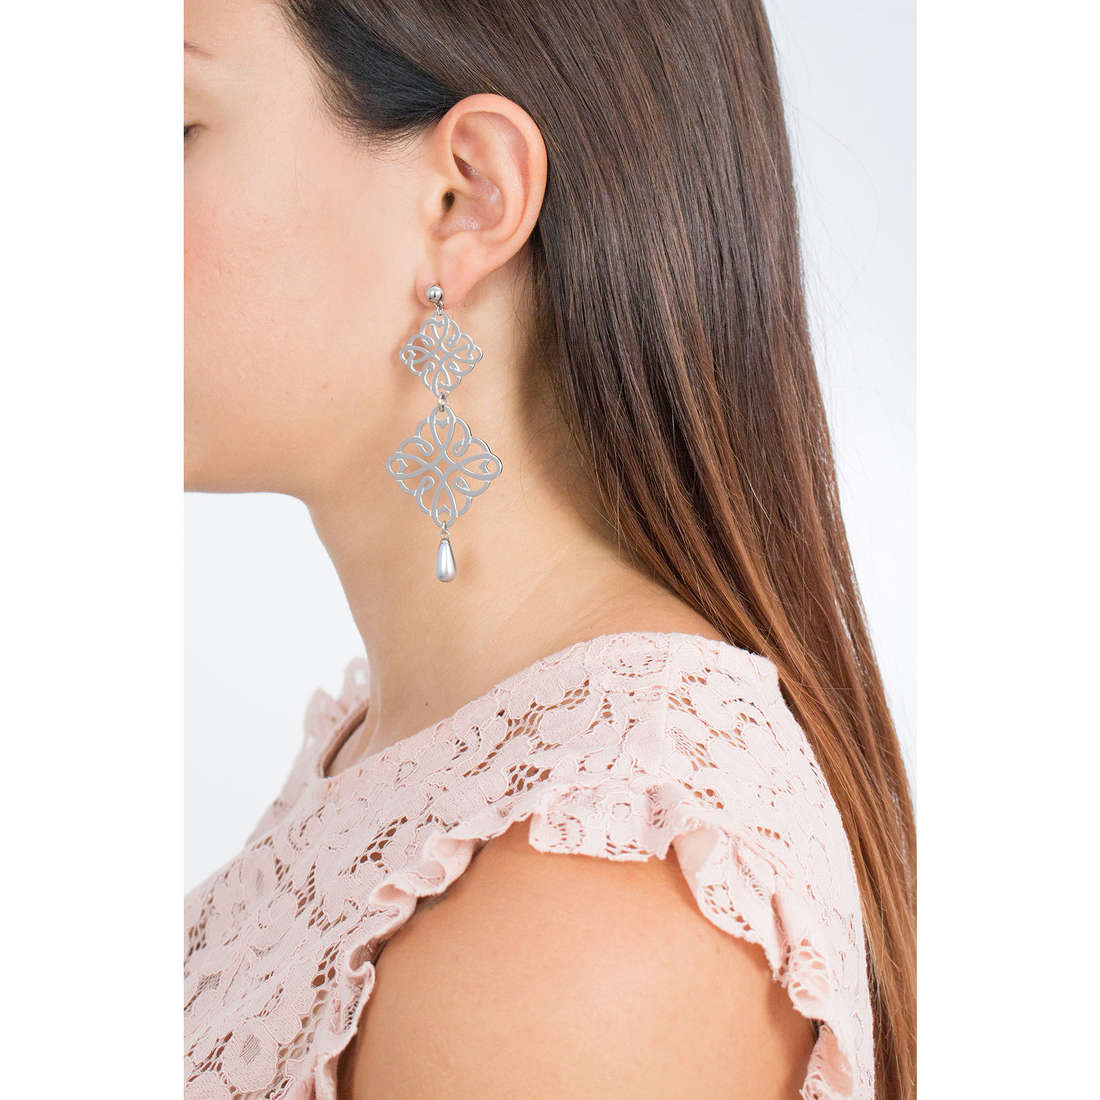 Brosway boucles d'oreille Persia femme BRS22 indosso